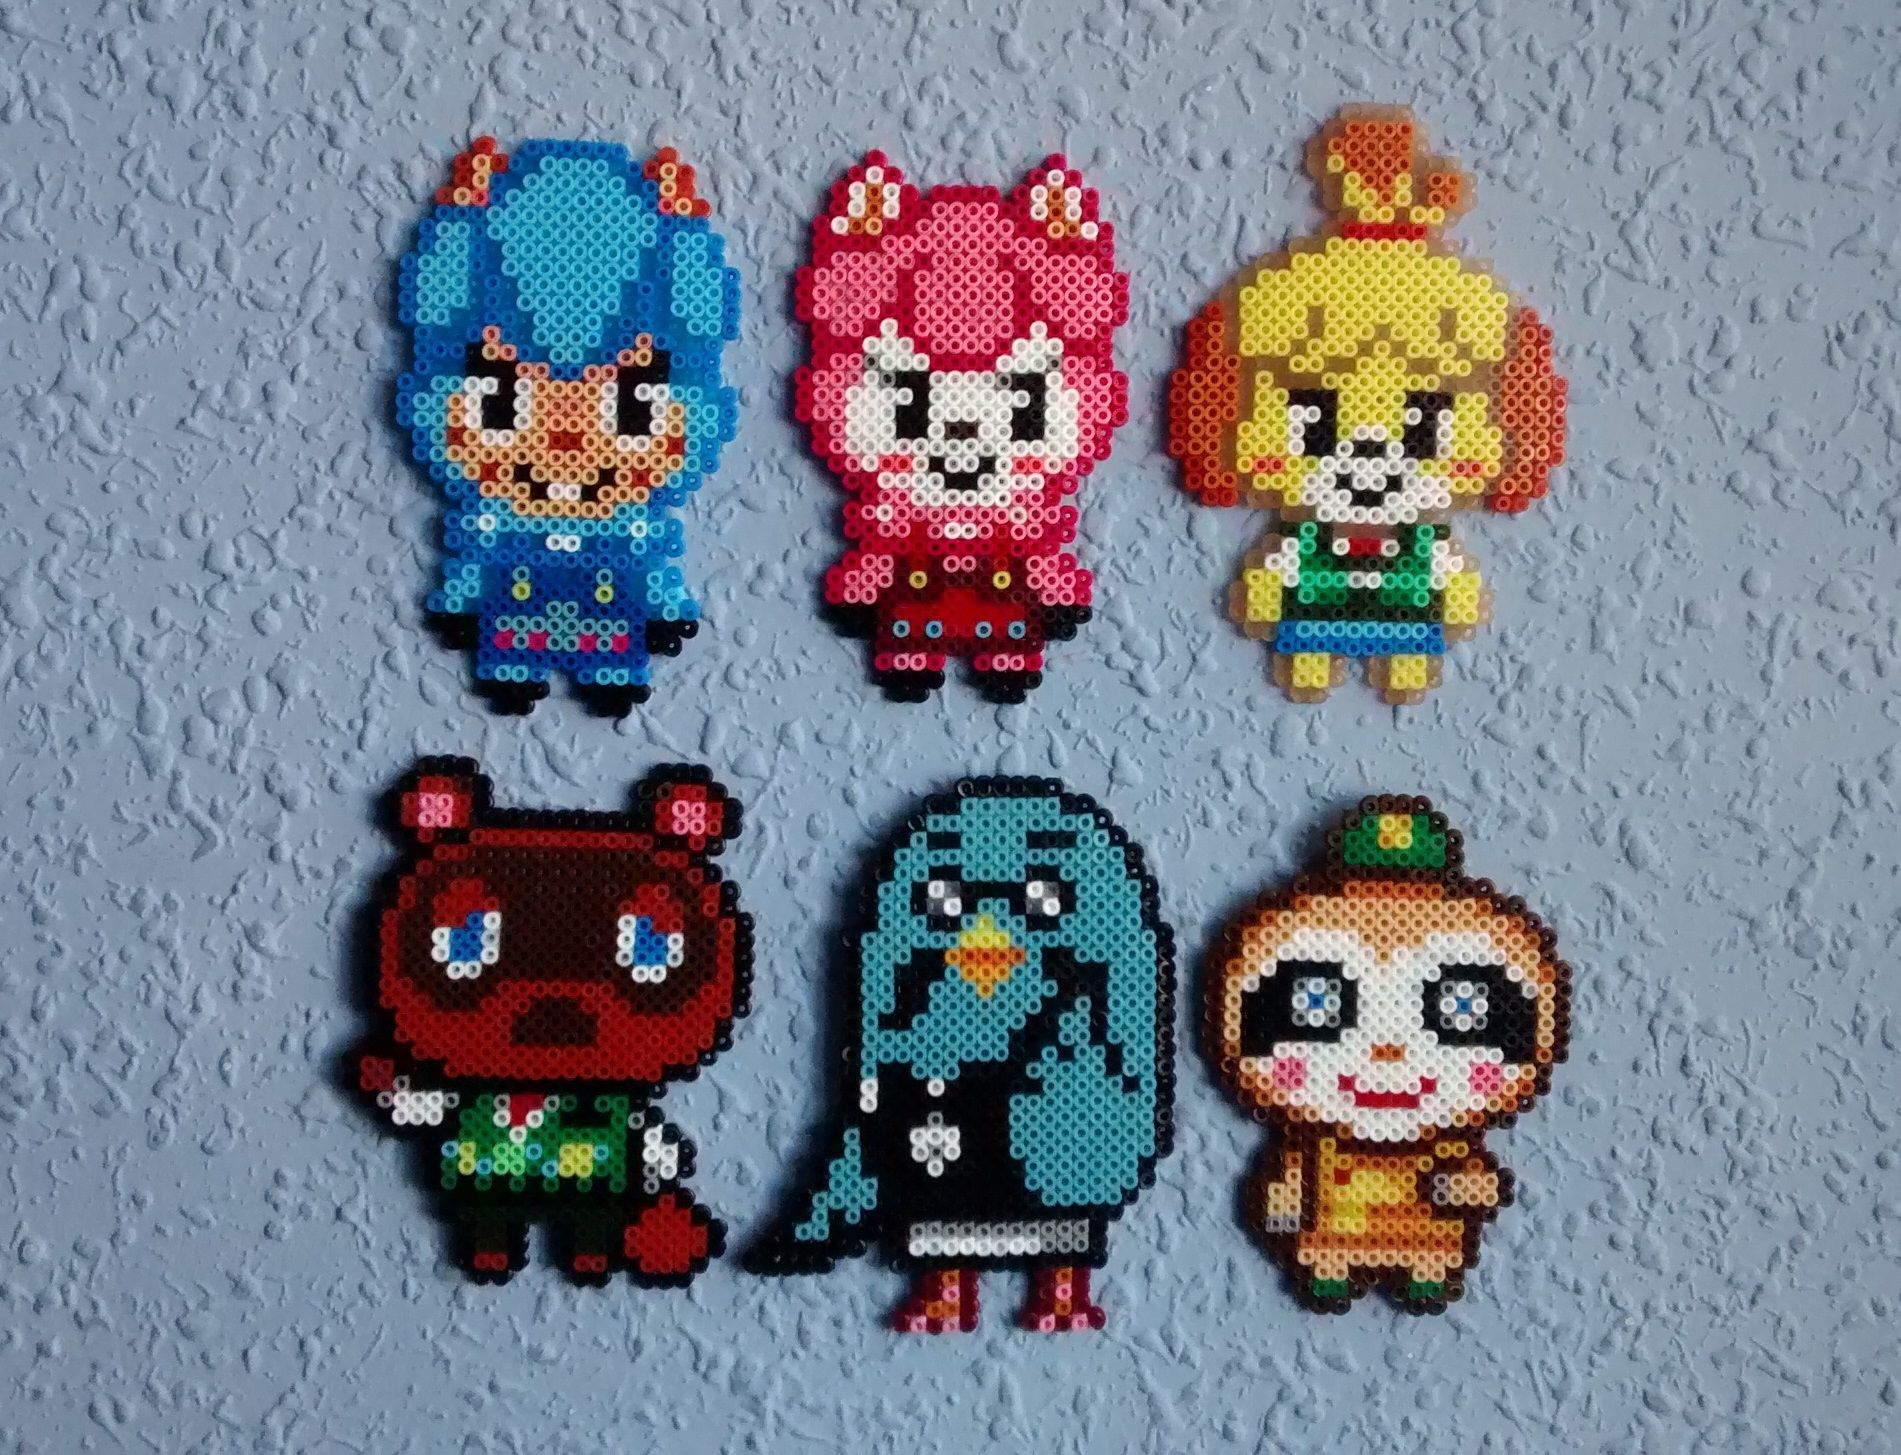 Animal Crossing New Leaf as hama beads